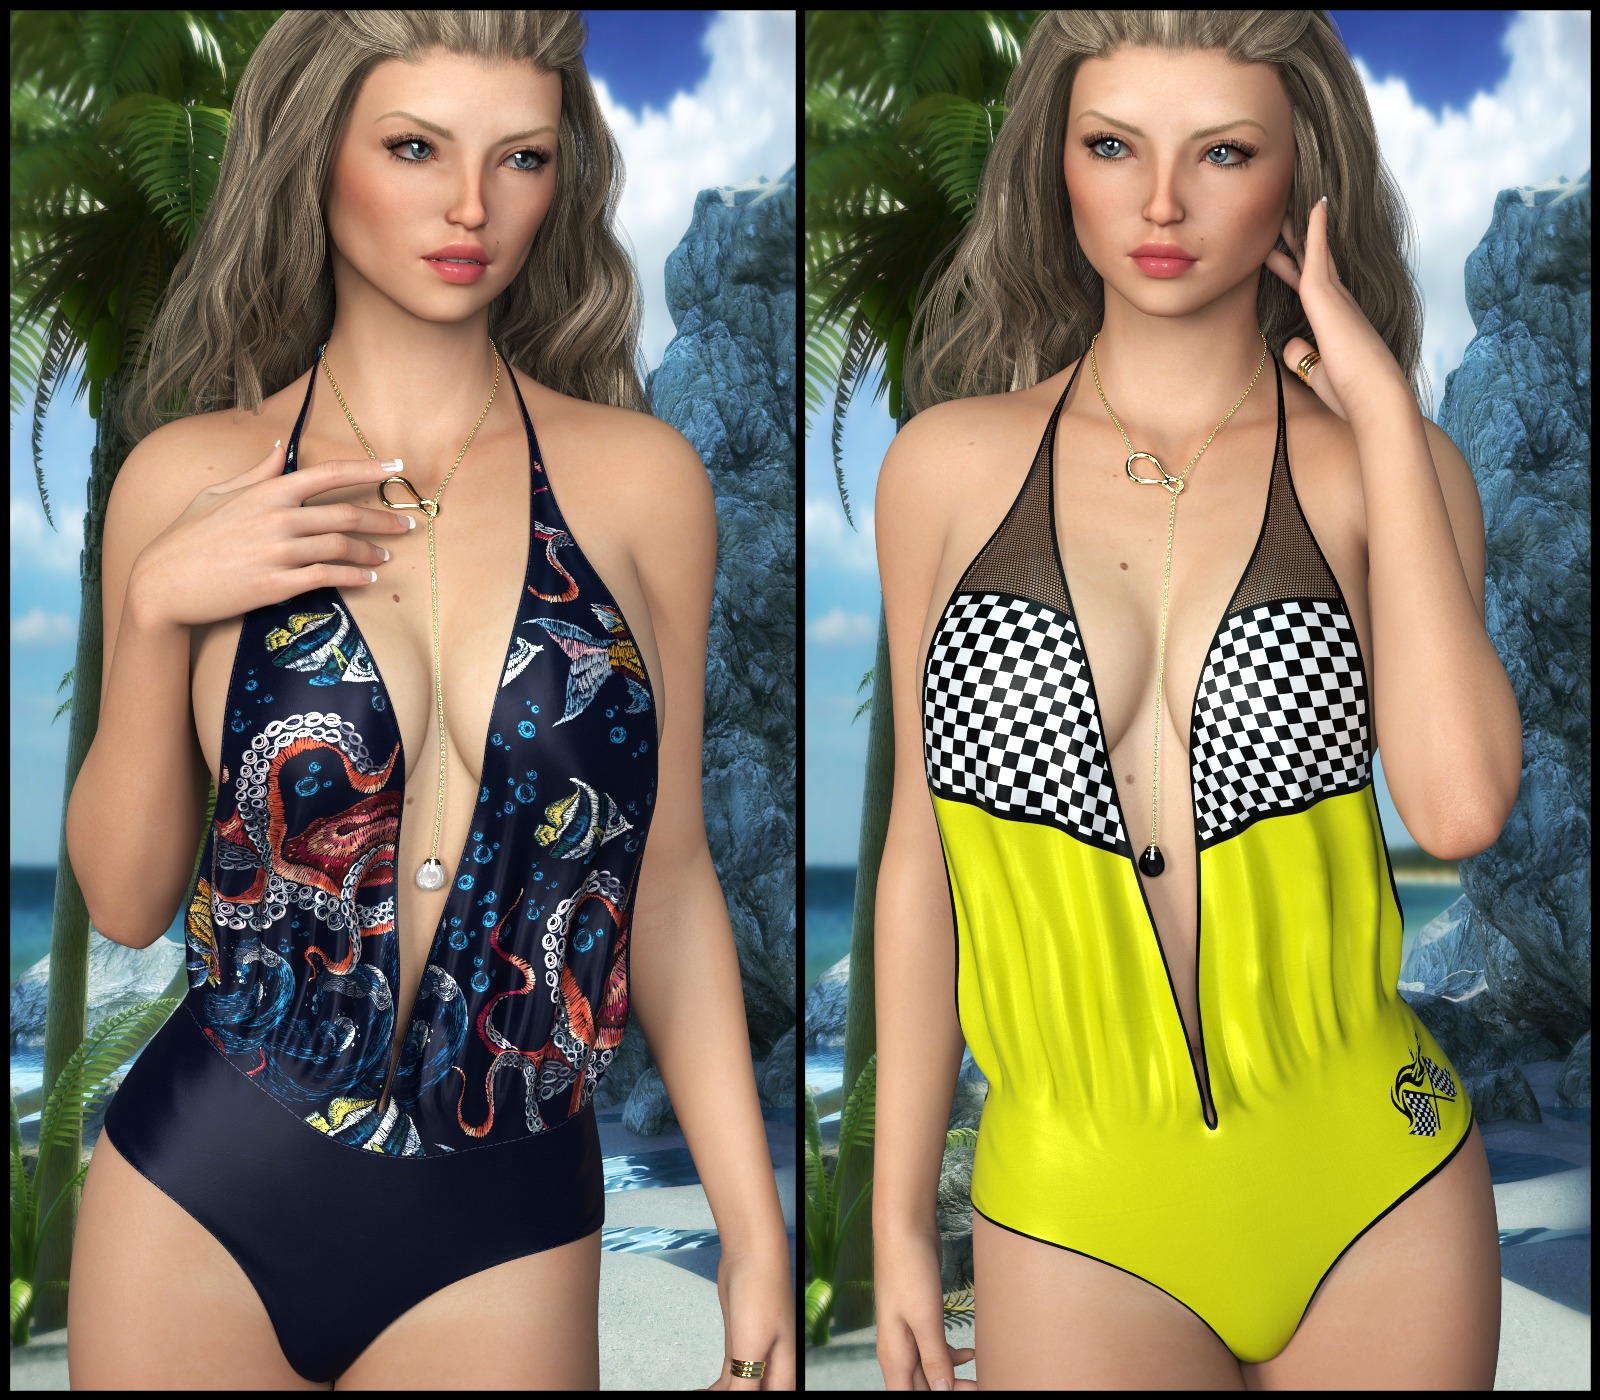 Sirens: dforce Poolside Swimwear for Genesis 8 Females